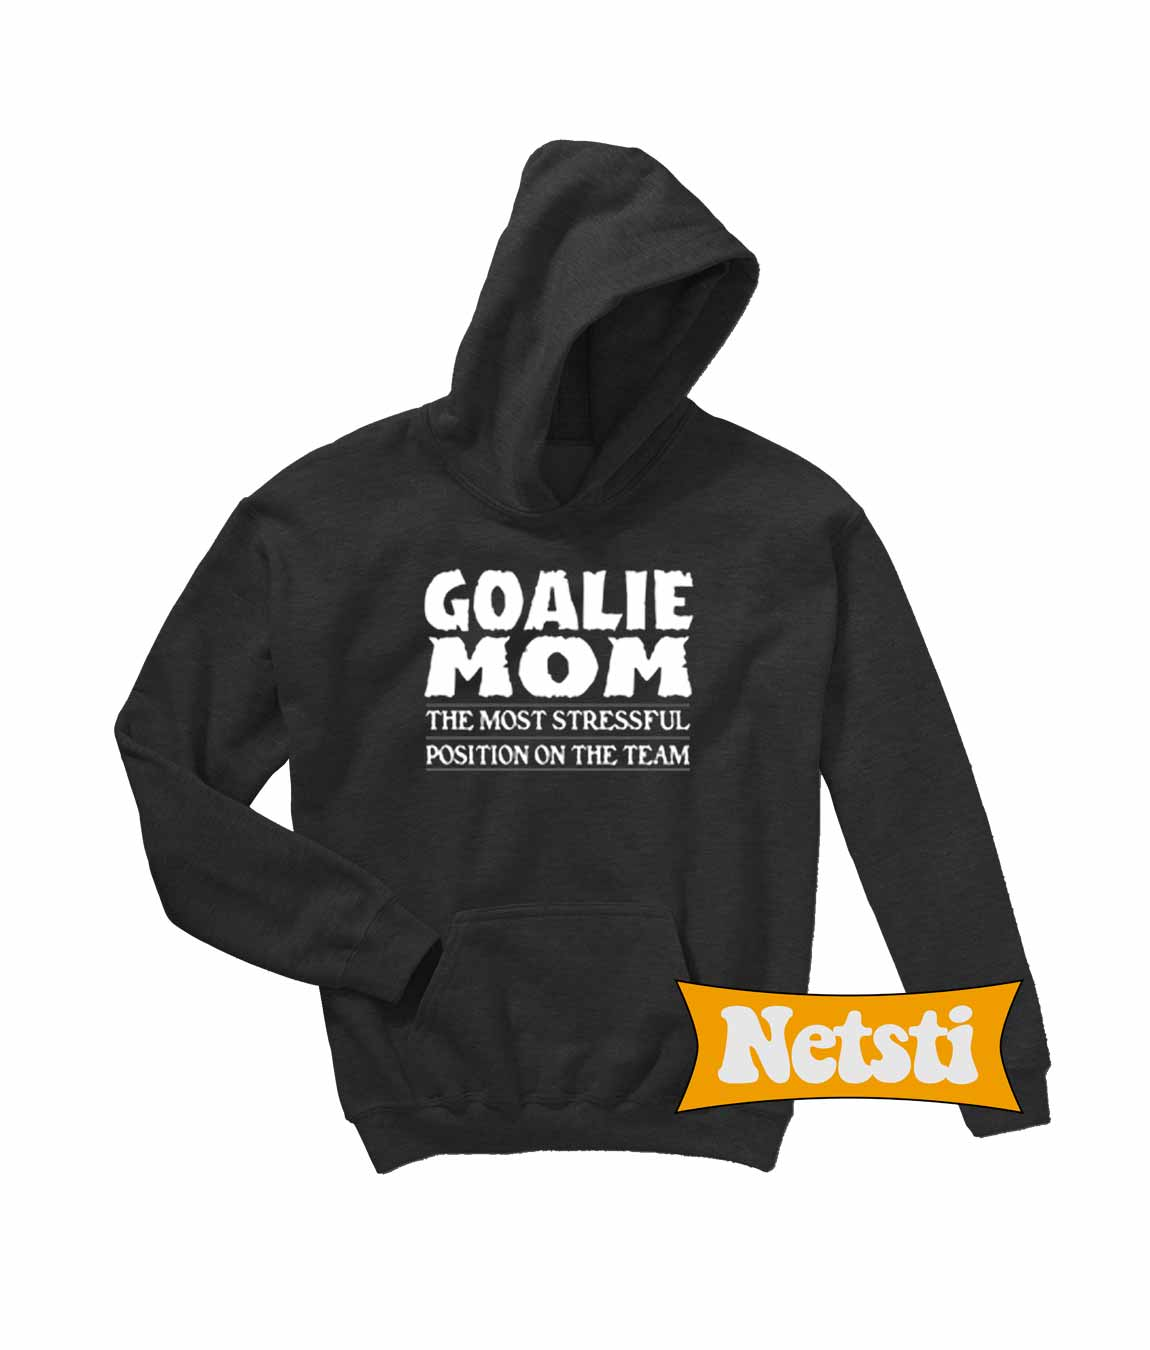 48a22b8f Goalie Mom The Most Stressful Position On The Team Chic Fashion Hoodie